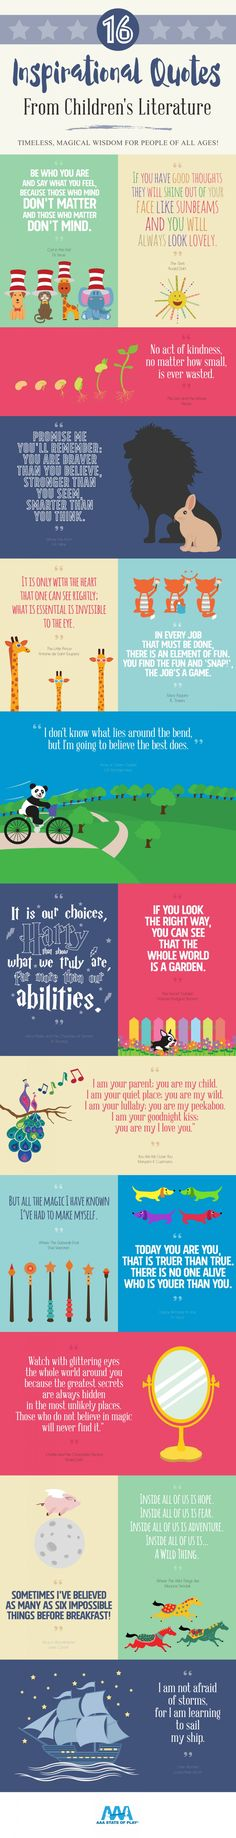 Inspirational Quotes from Children's Literature infographic